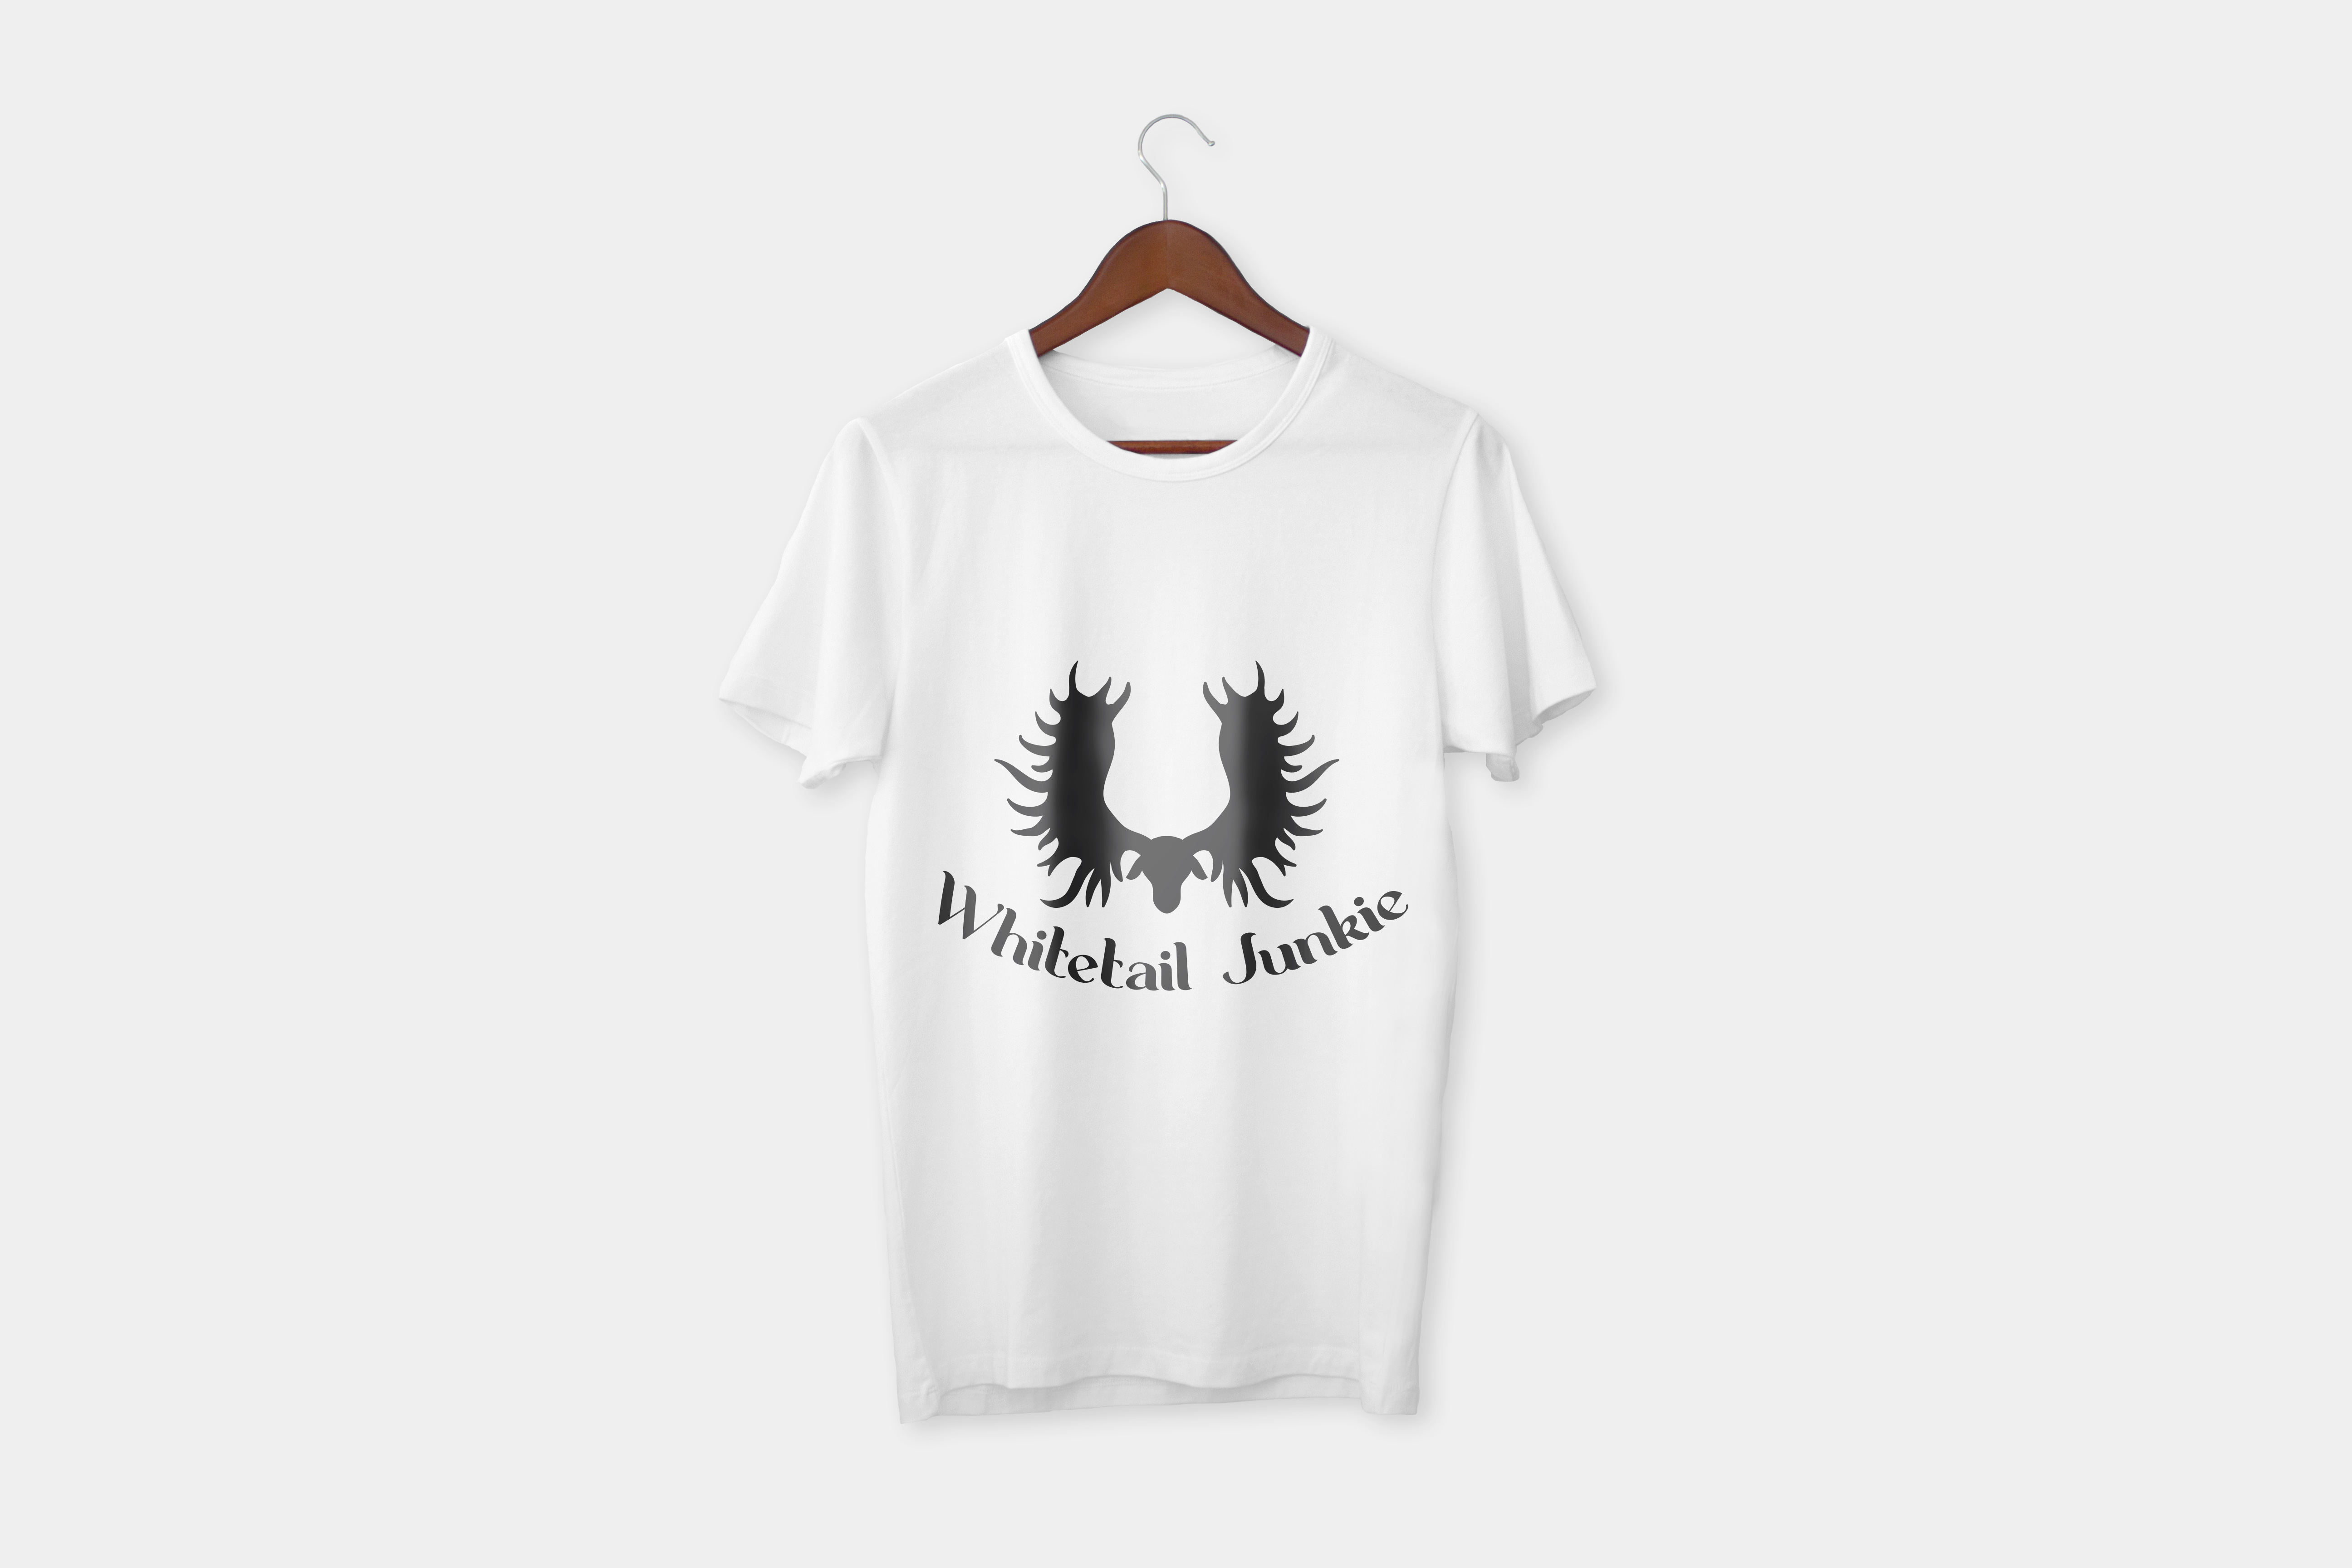 I will make an Amazing T shirt design for you in 24 hour